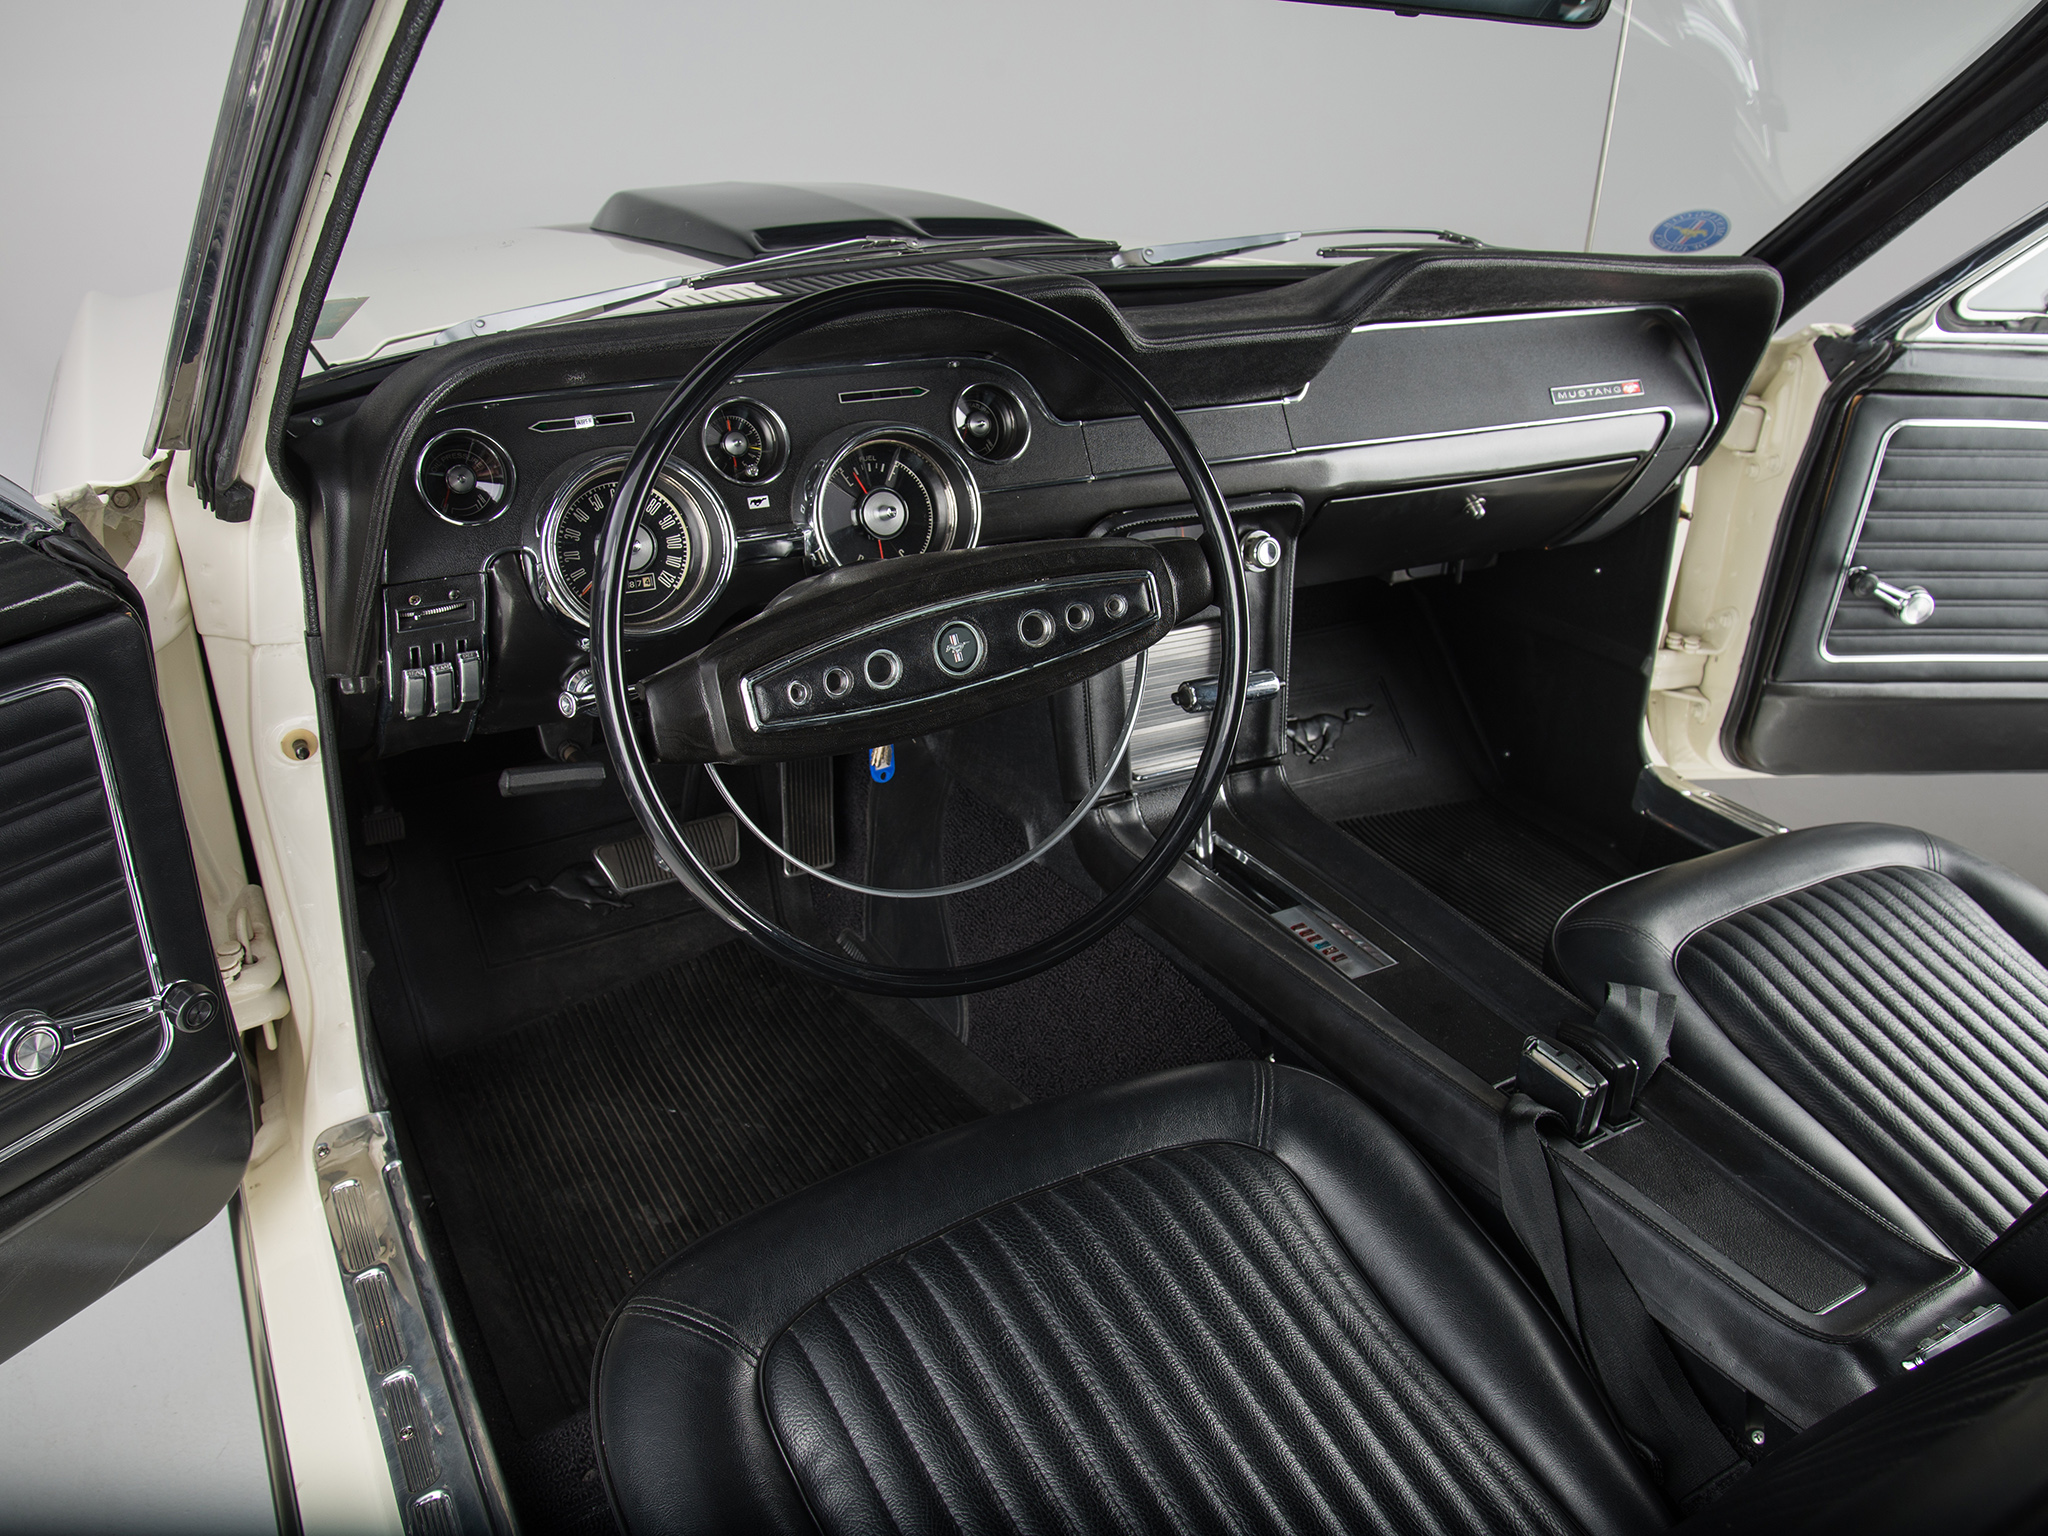 1968 Ford Mustang G T 428 Cobra Jet Fastback Muscle Classic Interior G Wallpaper 2048x1536